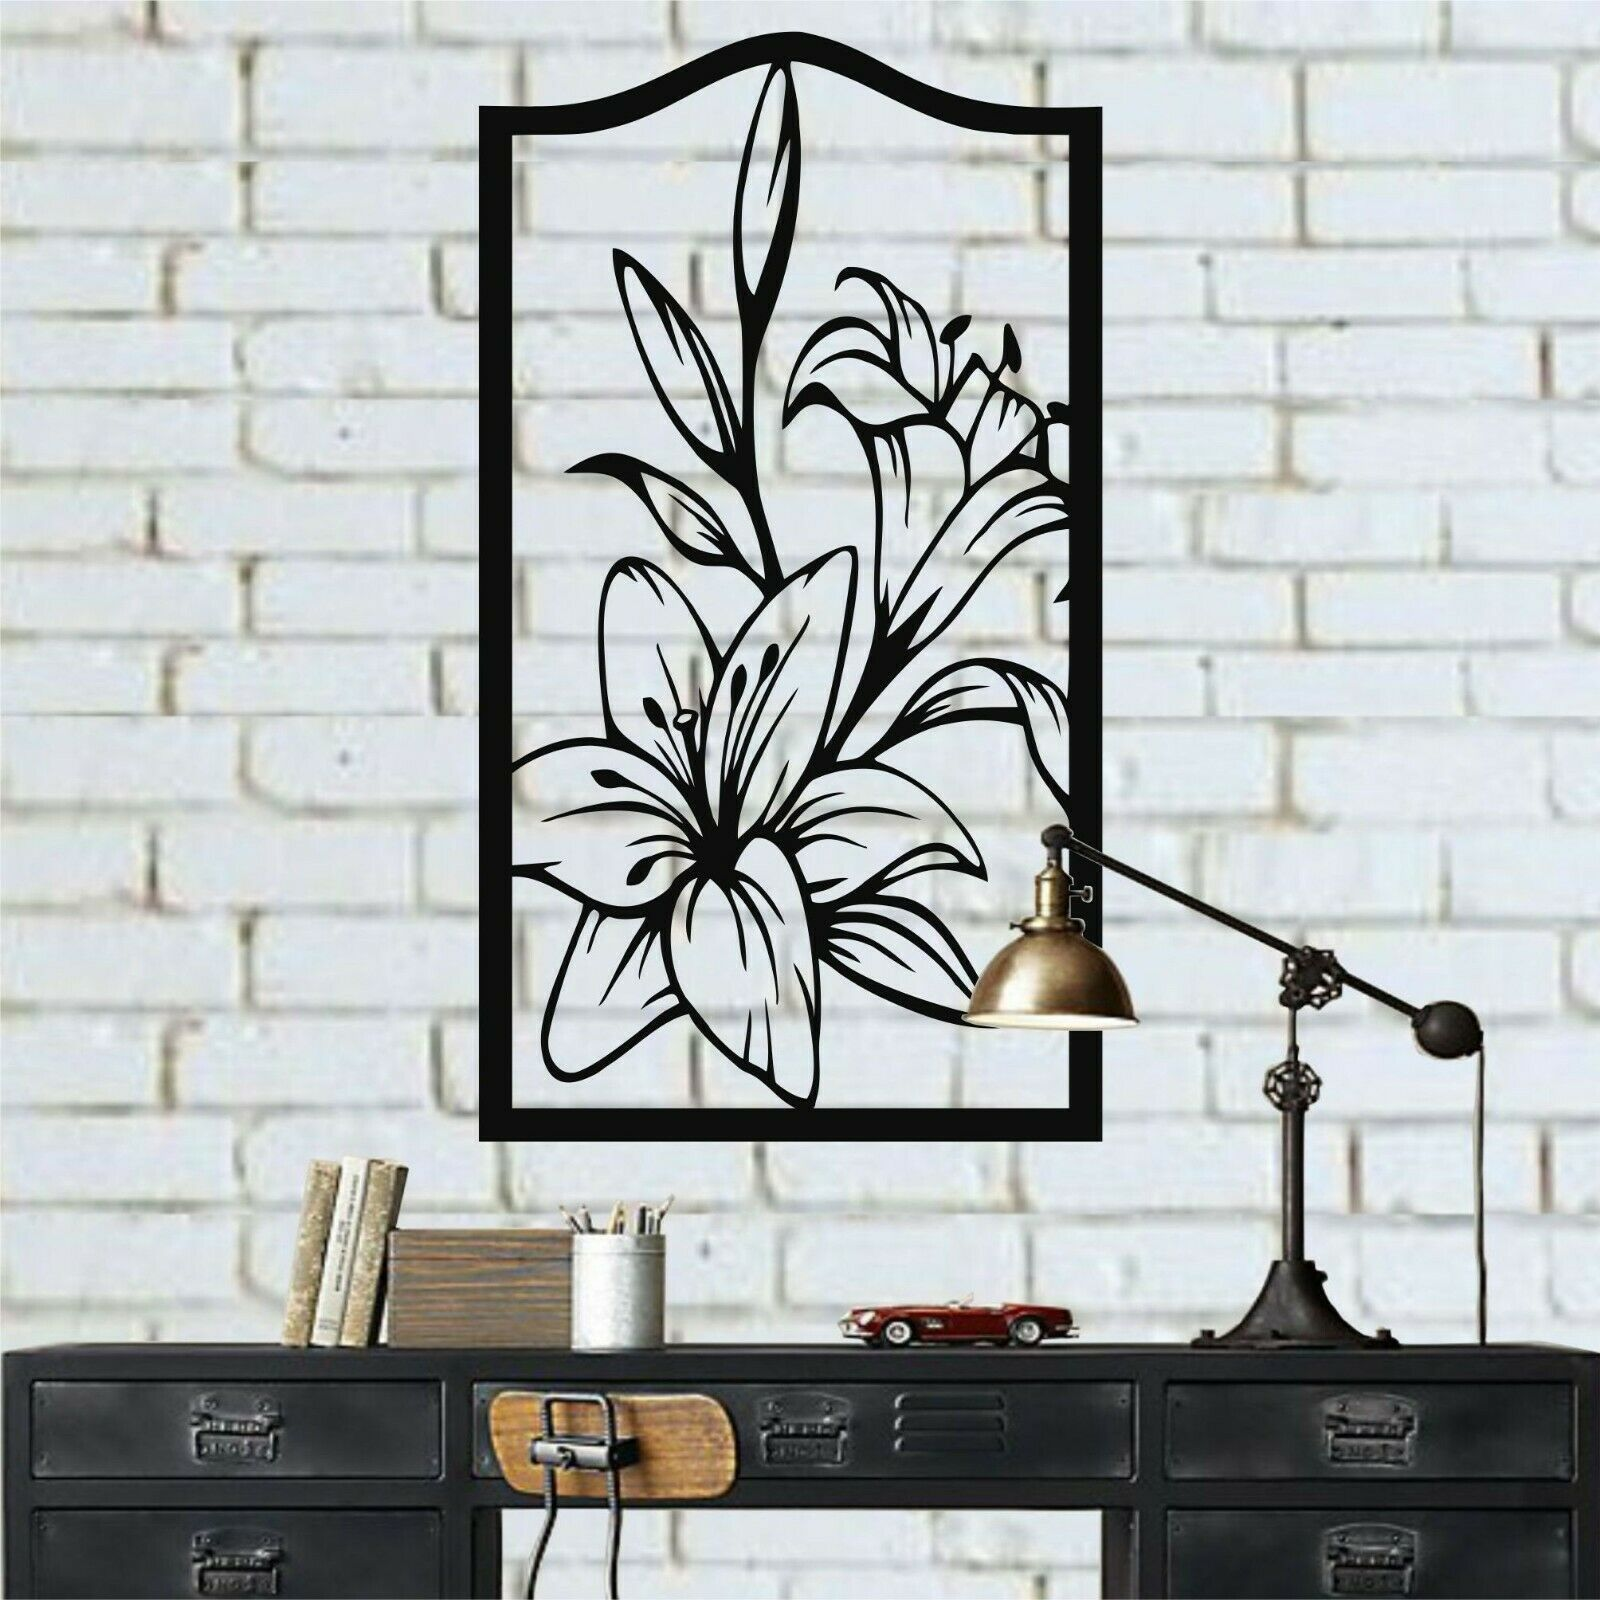 Abstract Art Gallery Shop Our Best Home Goods Deals Online At